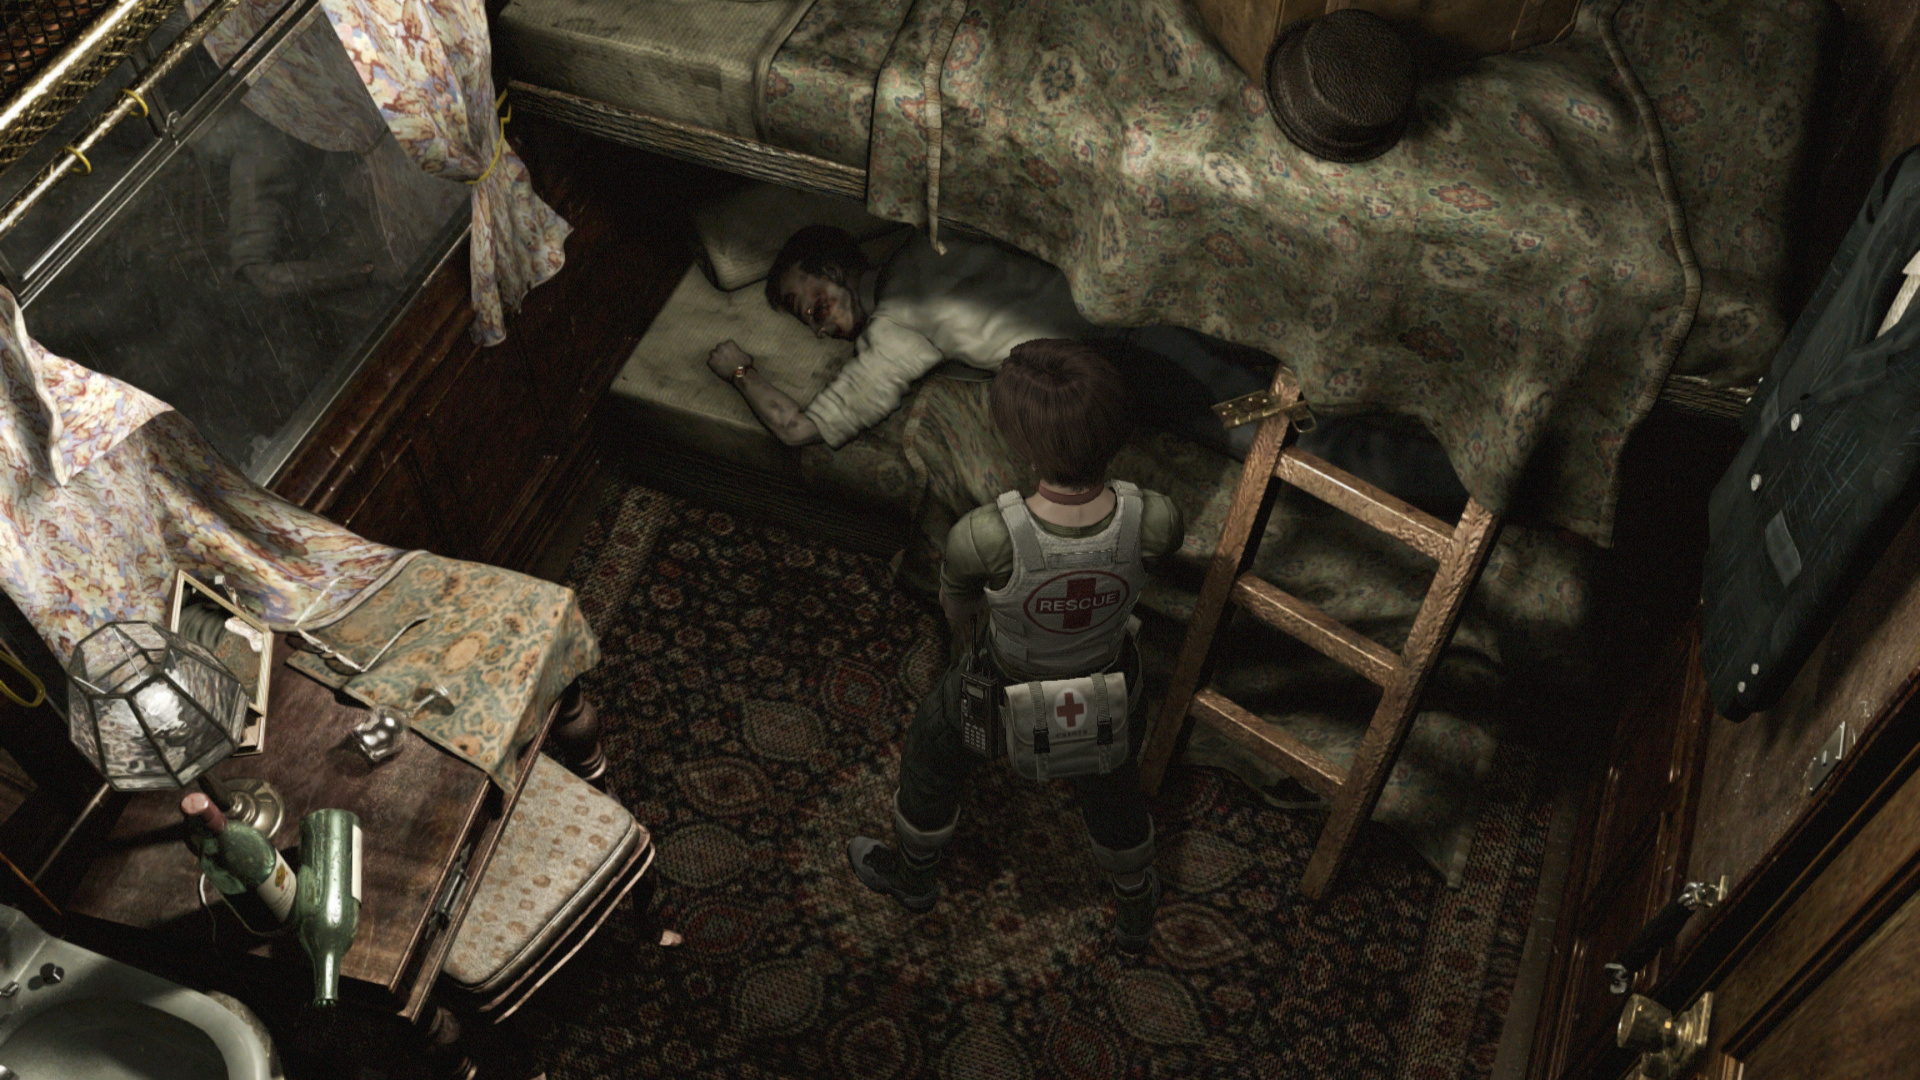 So, about Resident Evil 0's remastered visuals